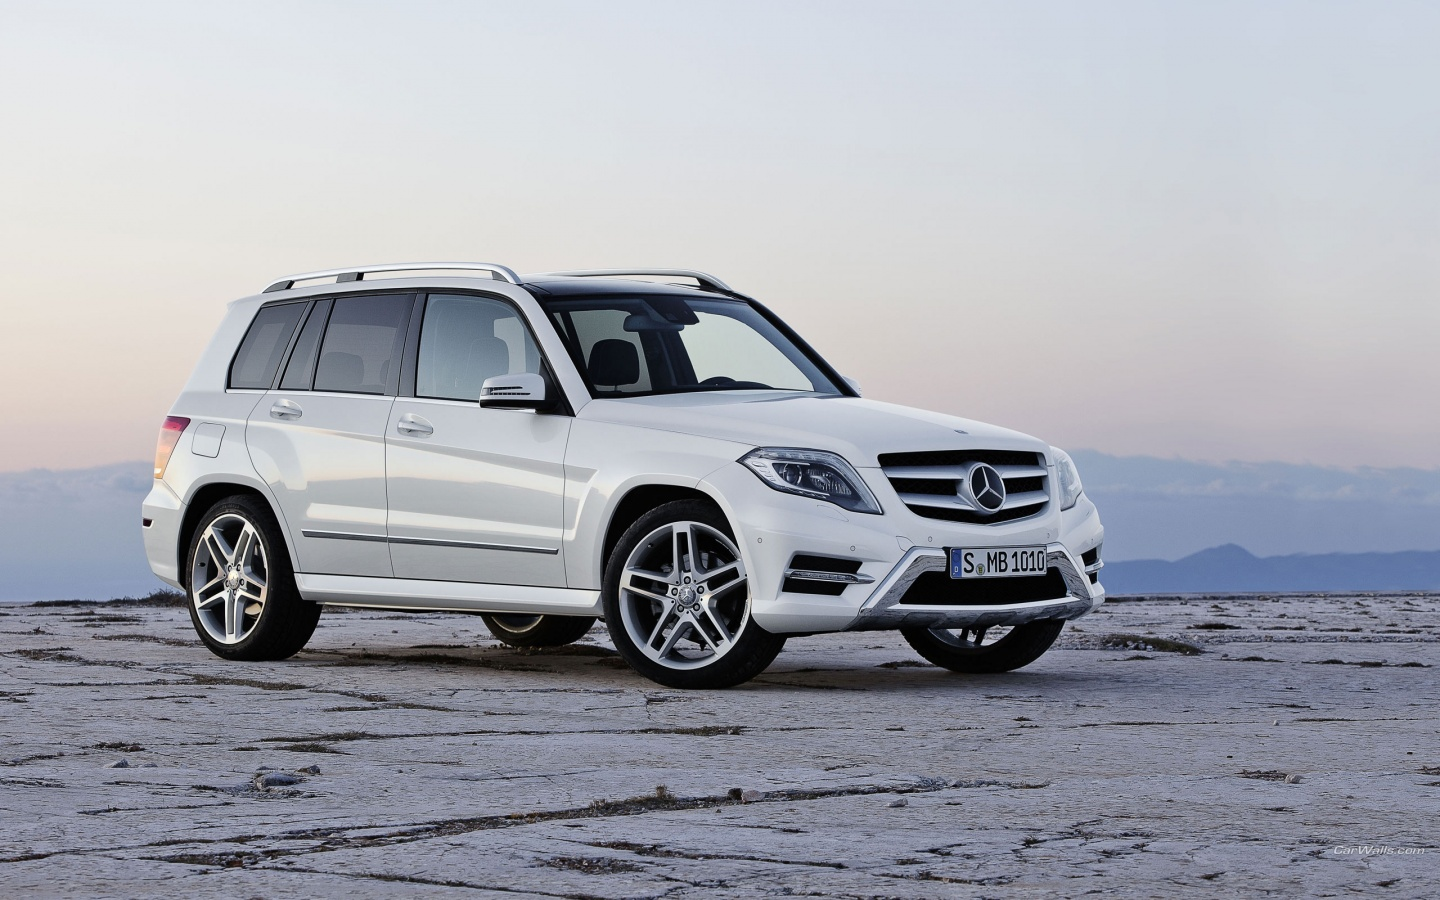 Mercedes benz glk 2012 wallpapers 1440x900 395625 for Mercedes benz glk 2012